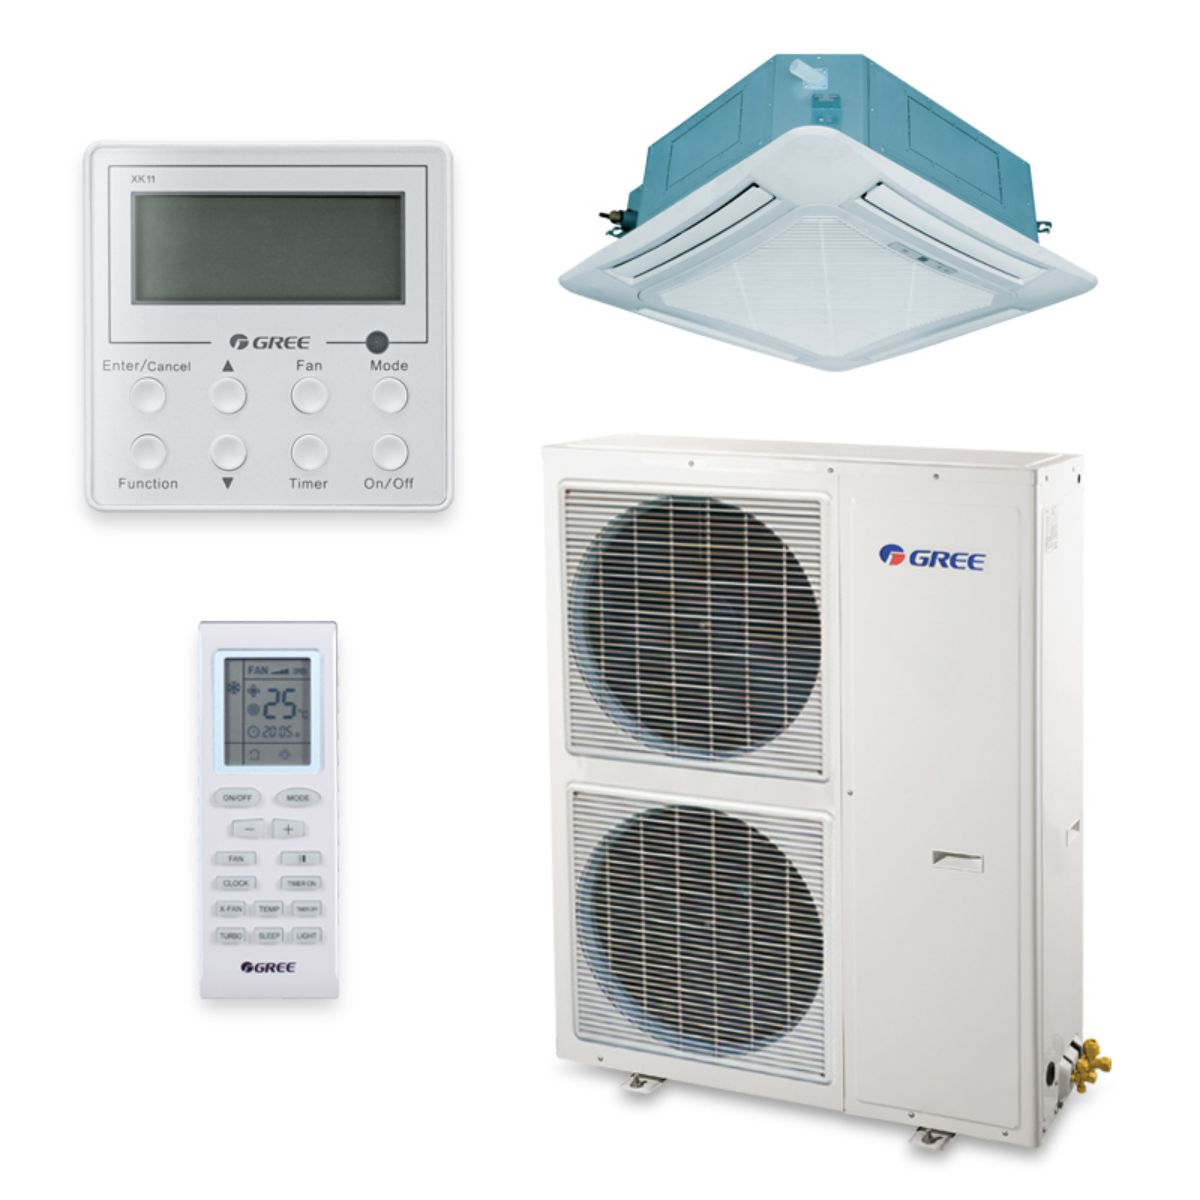 Gree UMAT48HP230V1AC-S - 48,000 BTU 16 SEER Ceiling Cassette Ductless Mini Split Air Conditioner Heat Pump 208-230V